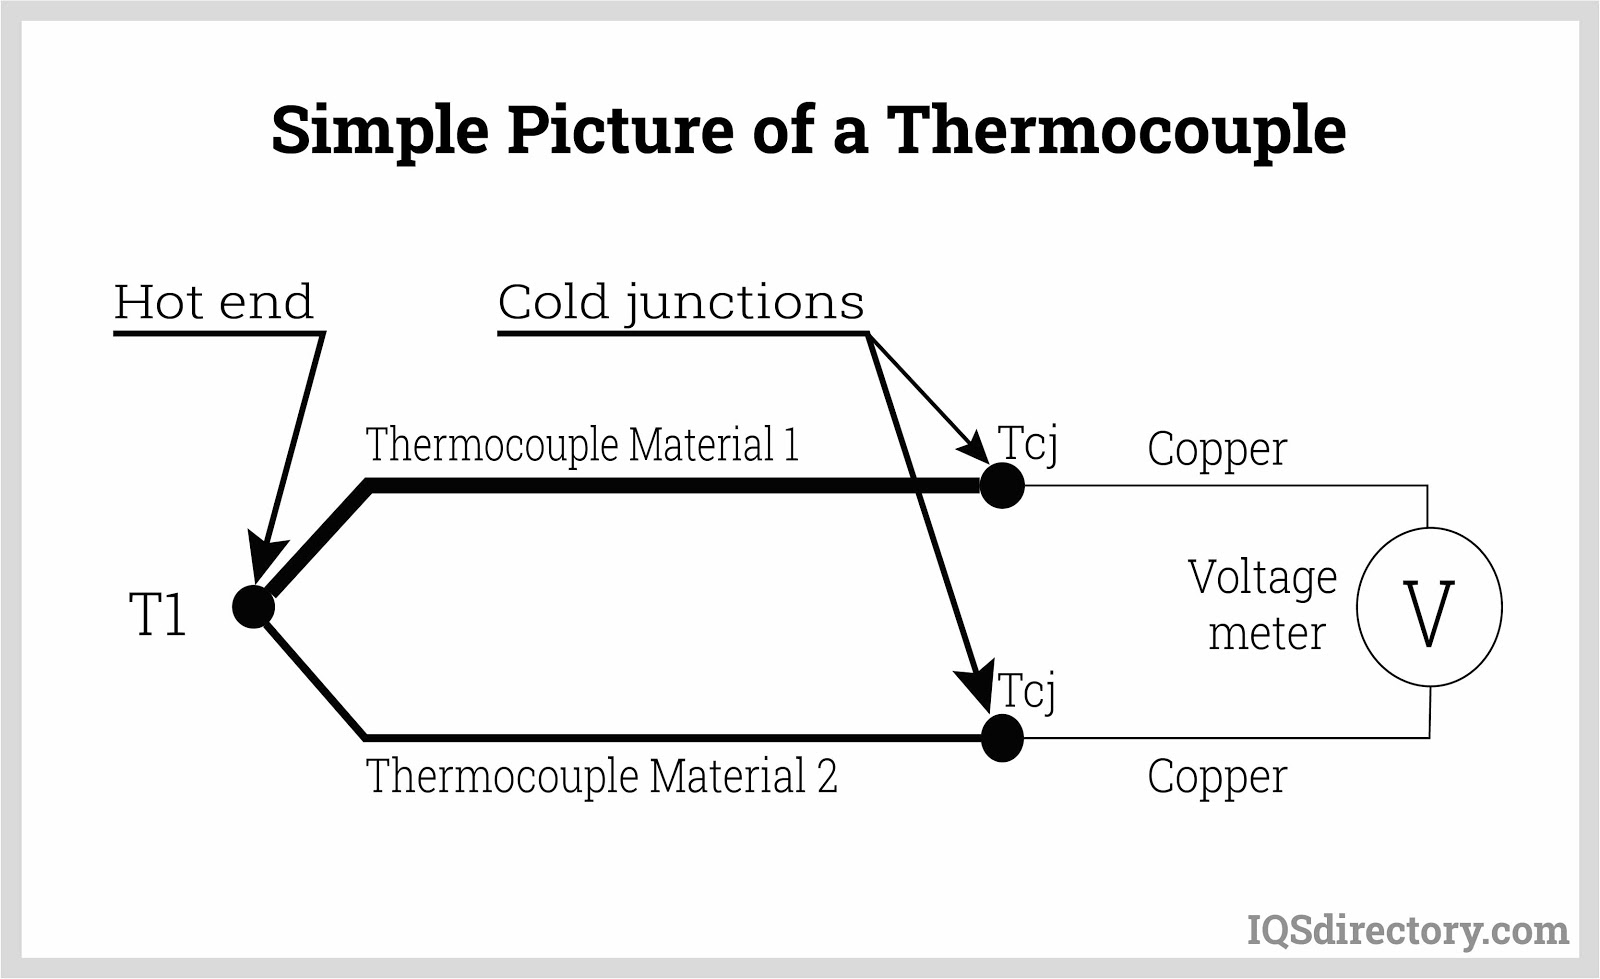 Simple Picture of a Thermocouple